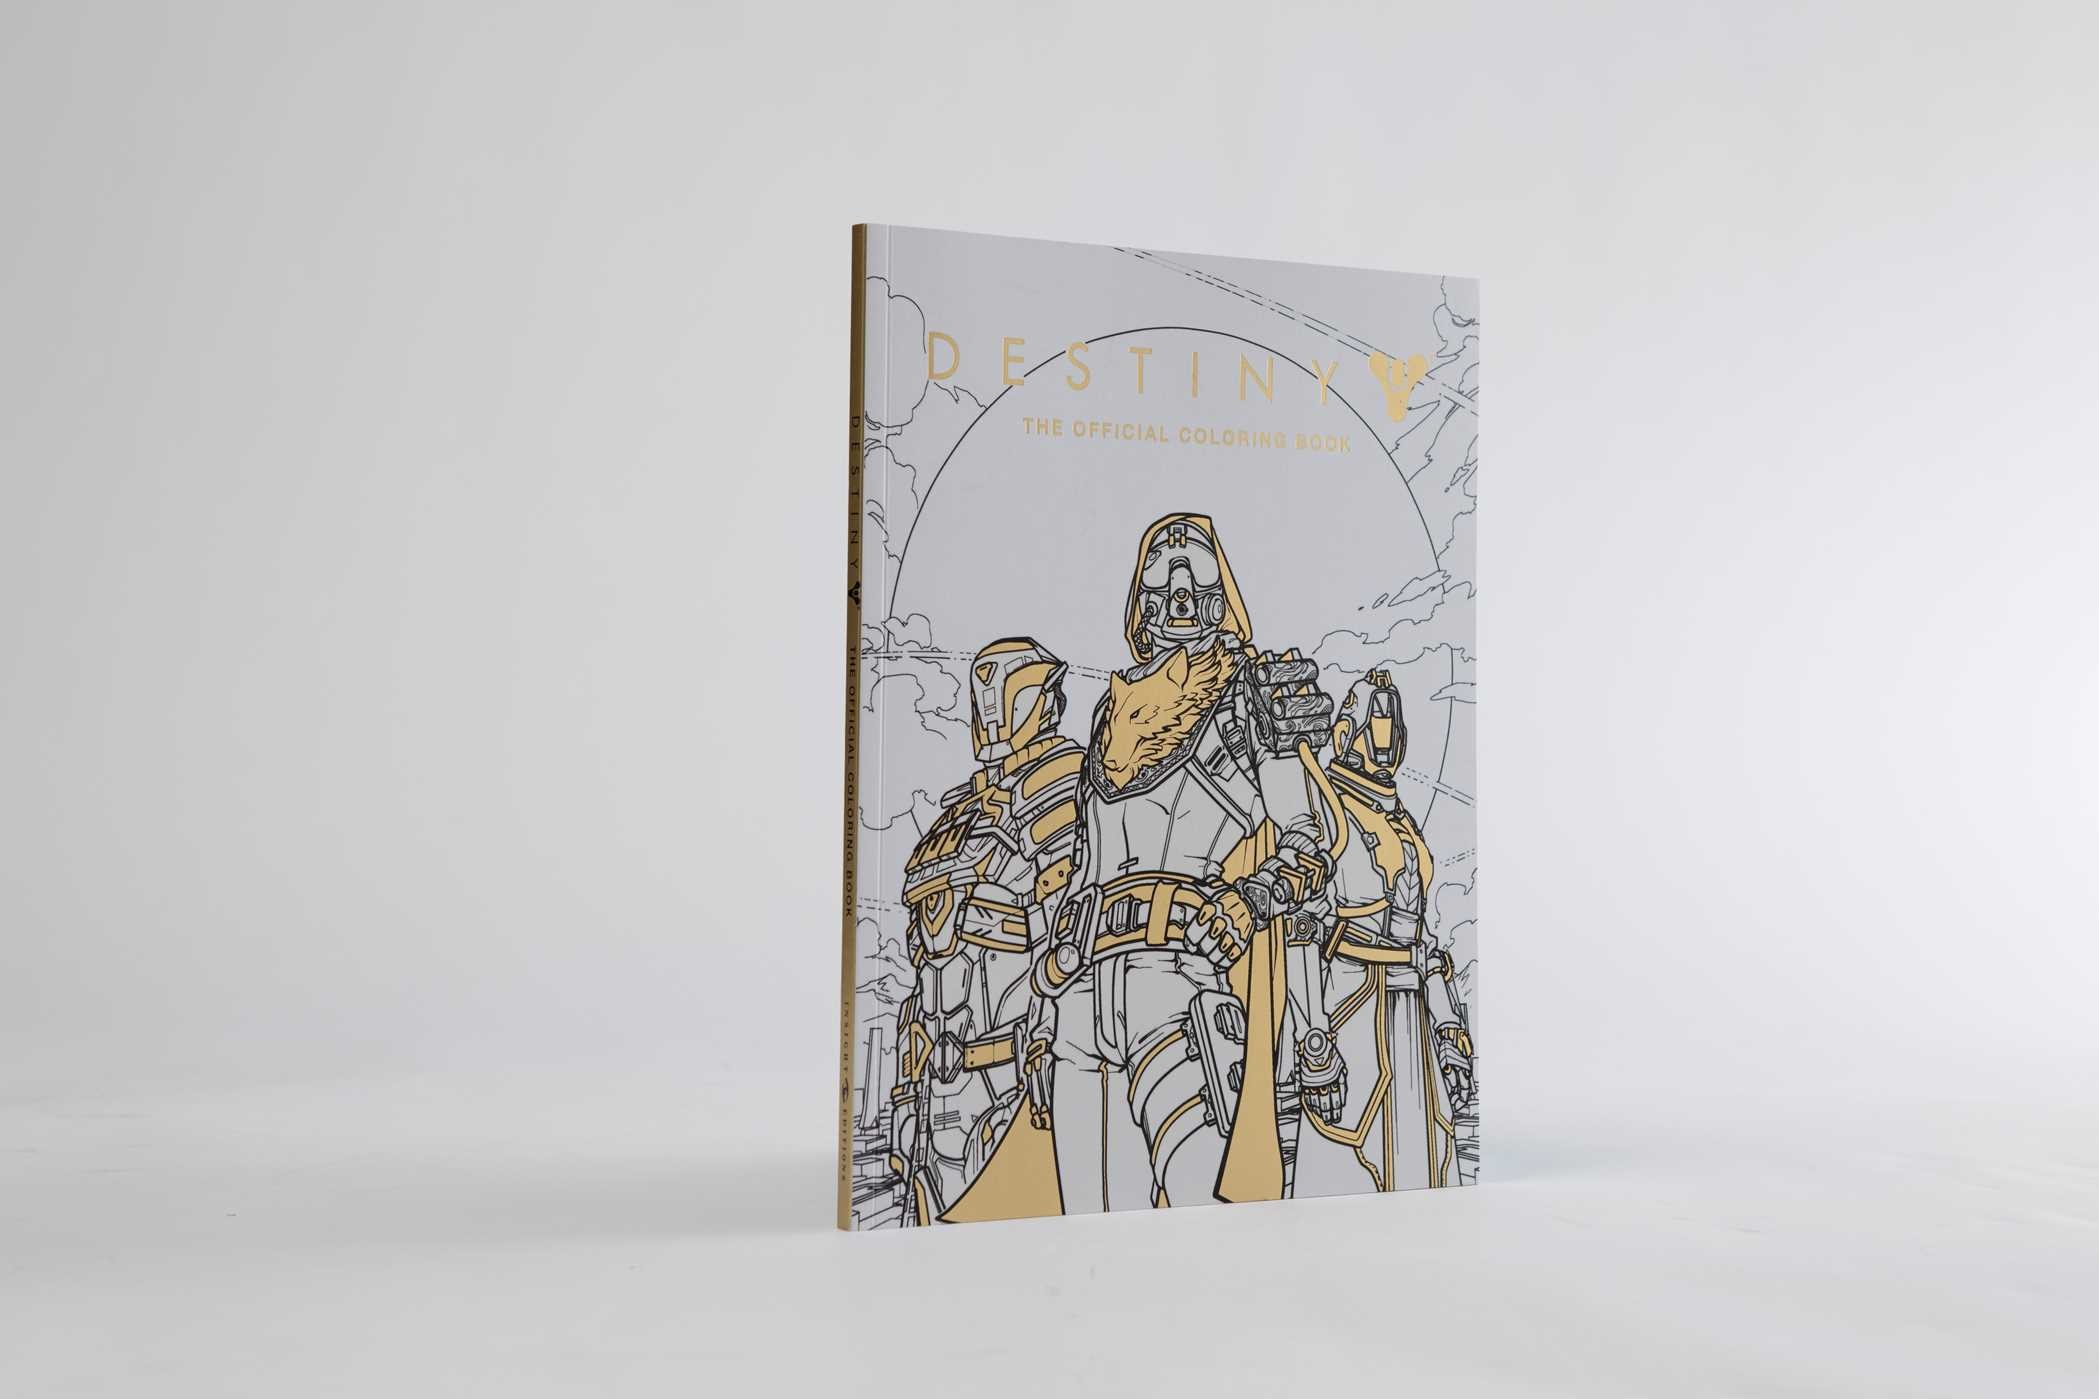 Destiny The Official Coloring Book 9781608879229in09